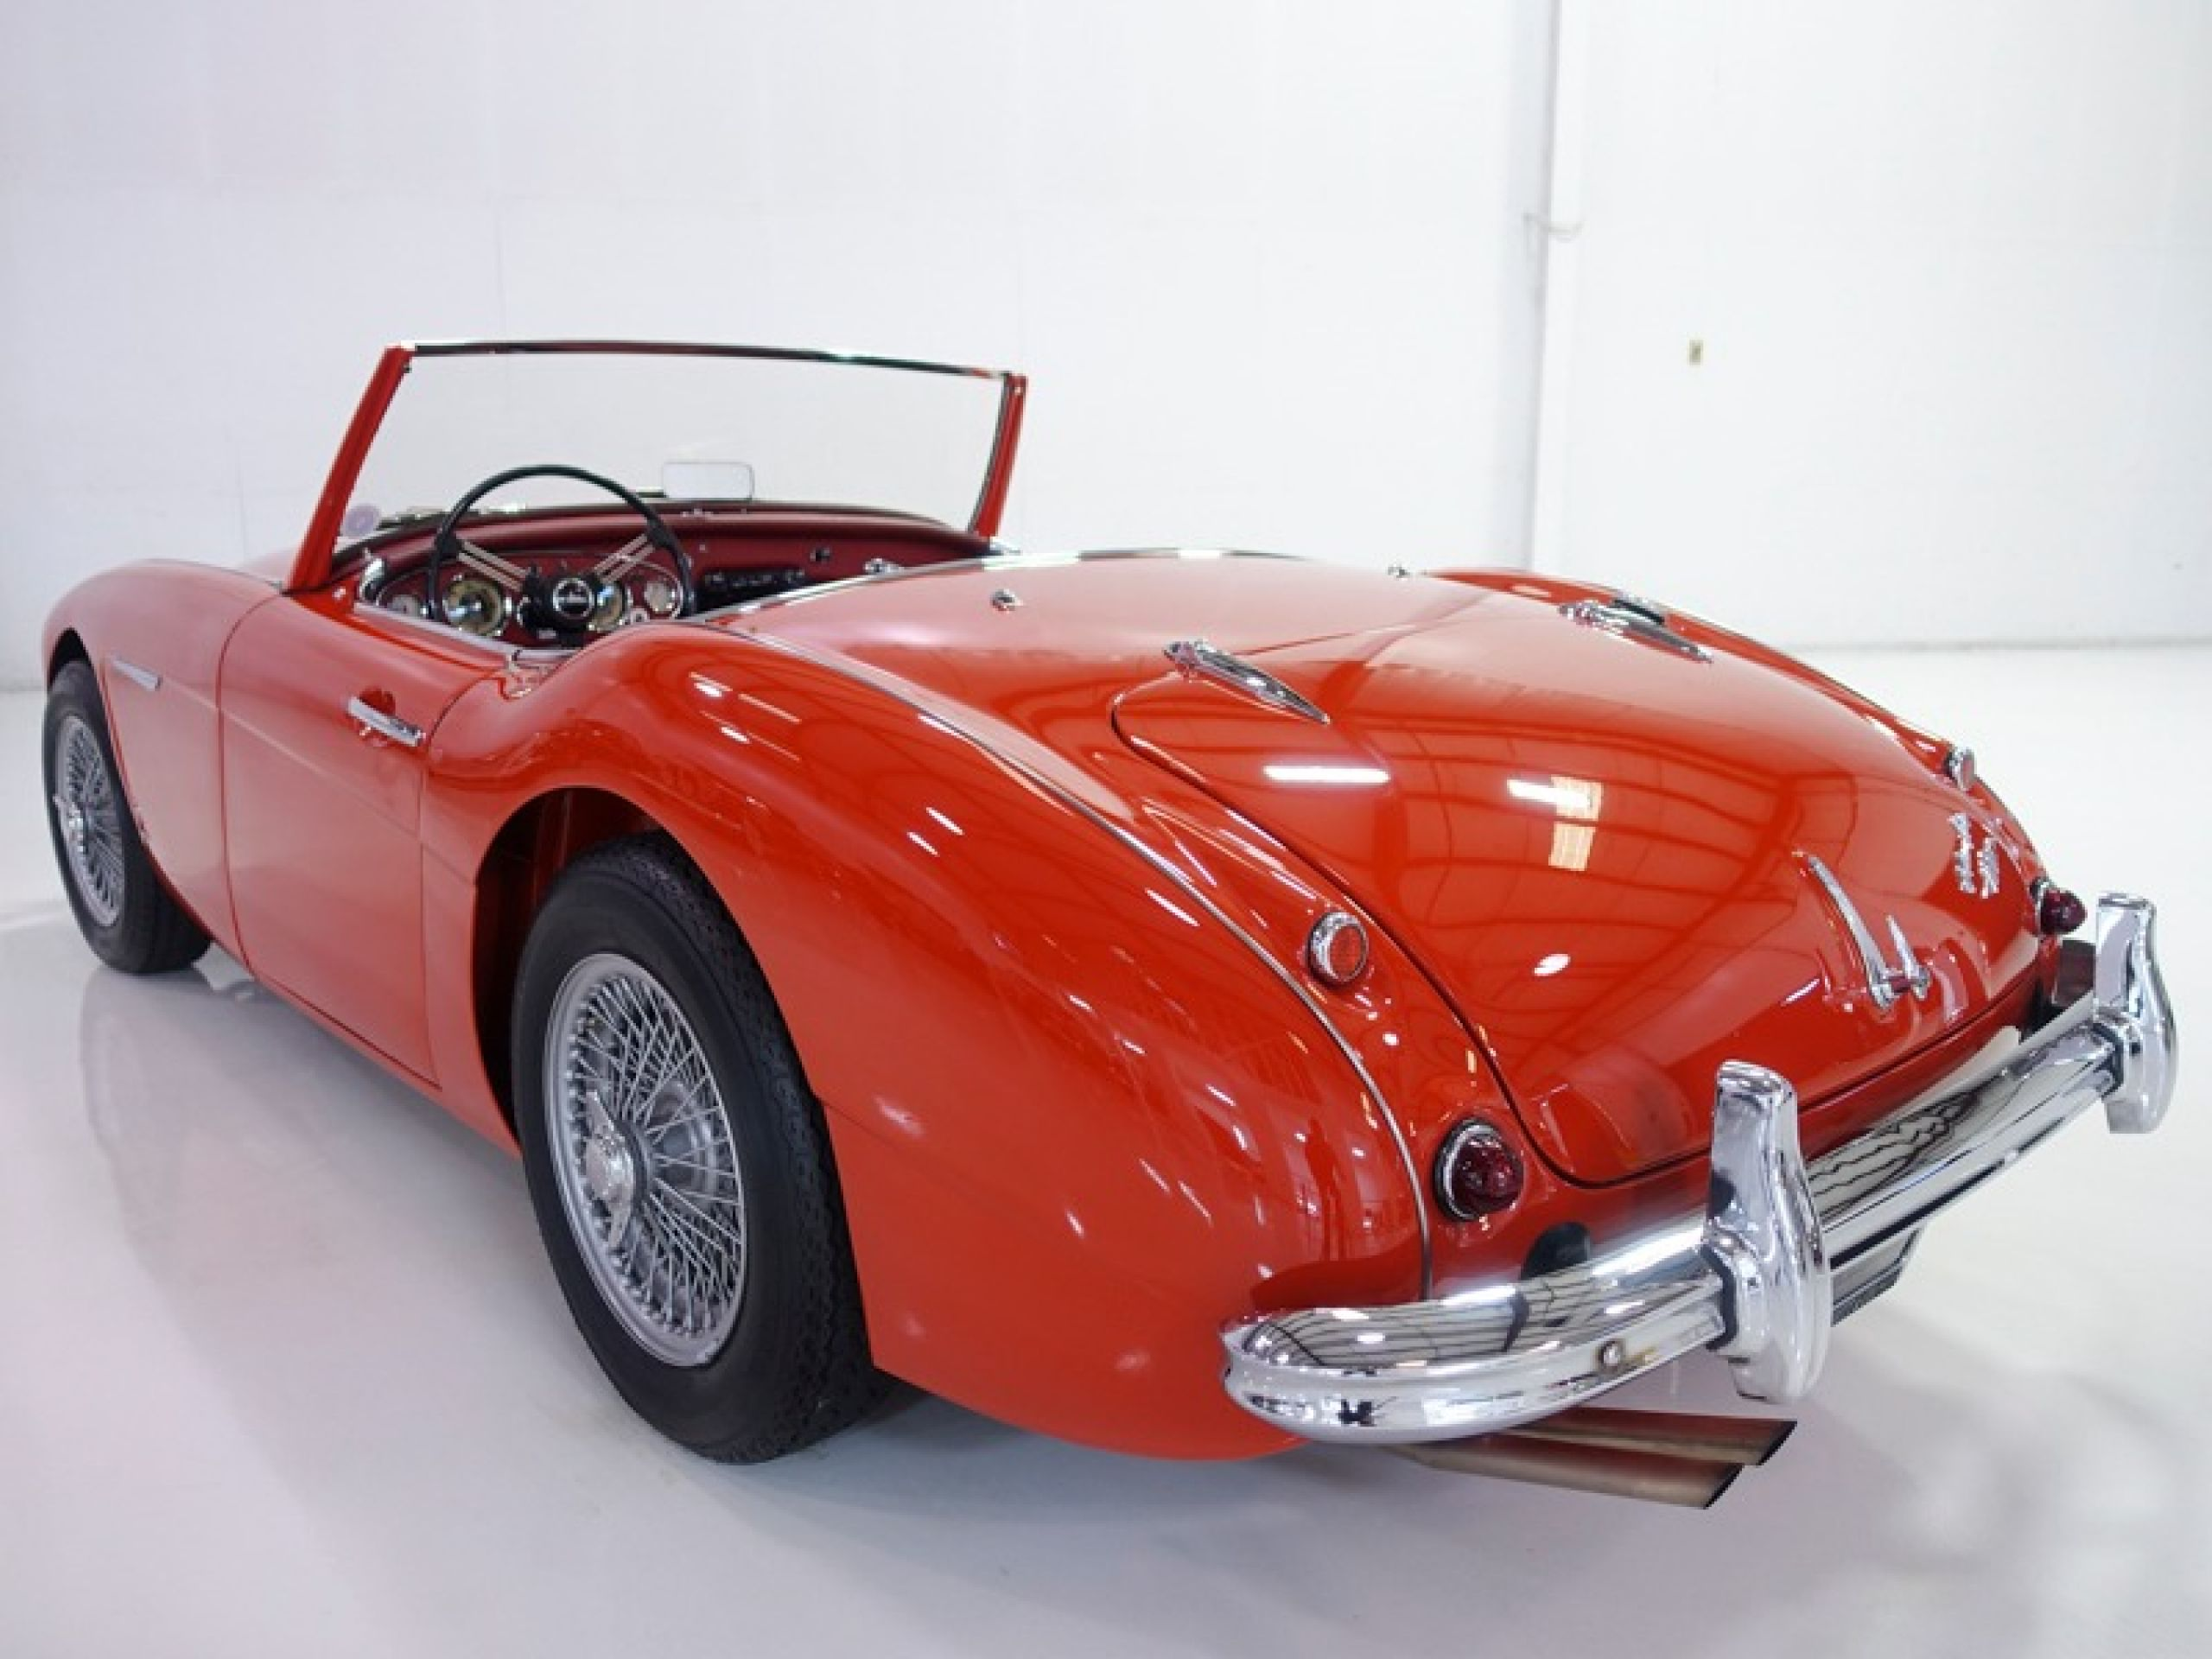 1959 Austin-Healey 100-six BN6 Roadster